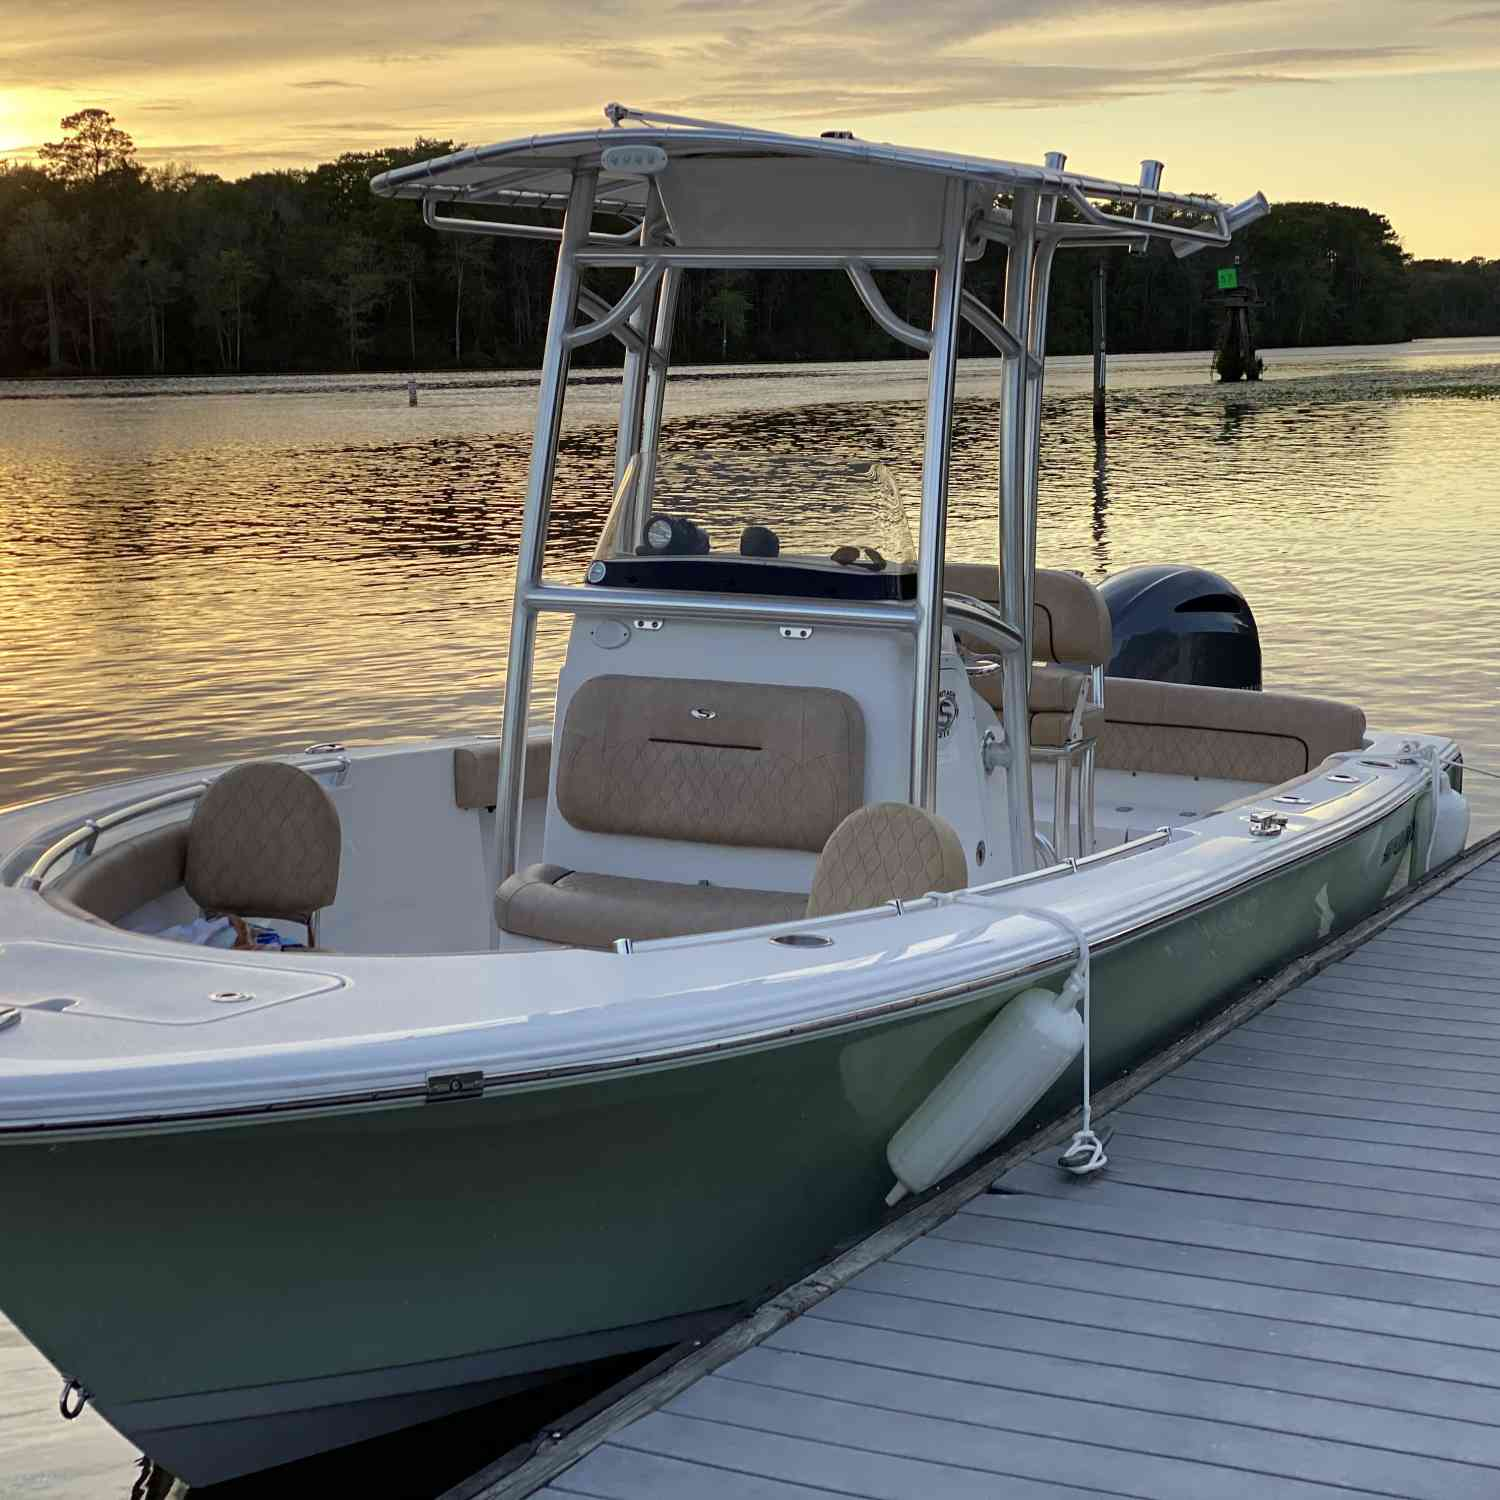 Title: Sunset dinner cruise - On board their Sportsman Heritage 211 Center Console - Location: Murrells inlet, South Carolina. Participating in the Photo Contest #SportsmanMay2020